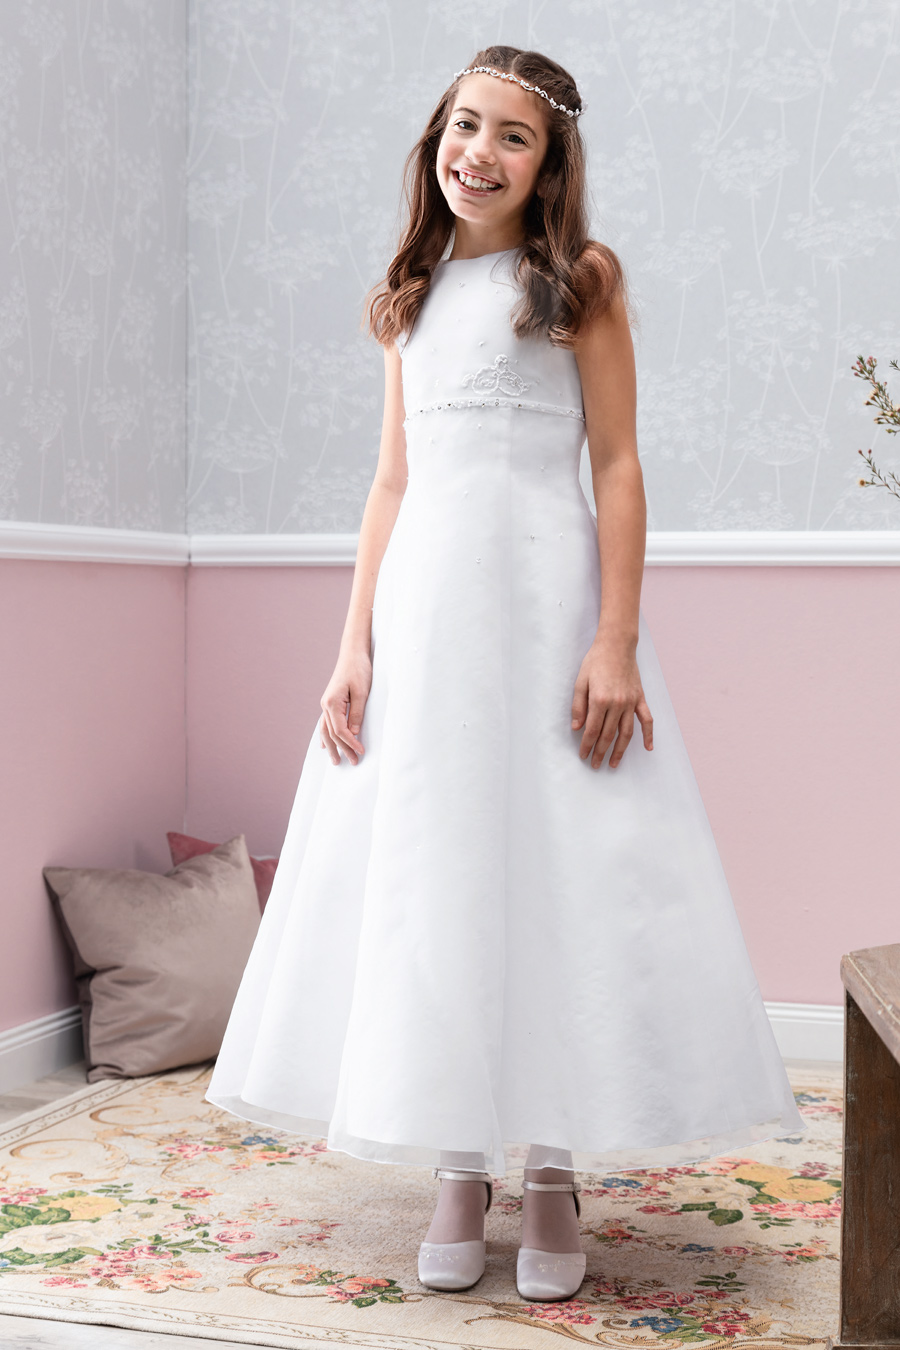 EM 2018 DRESS: DEA Emmerling